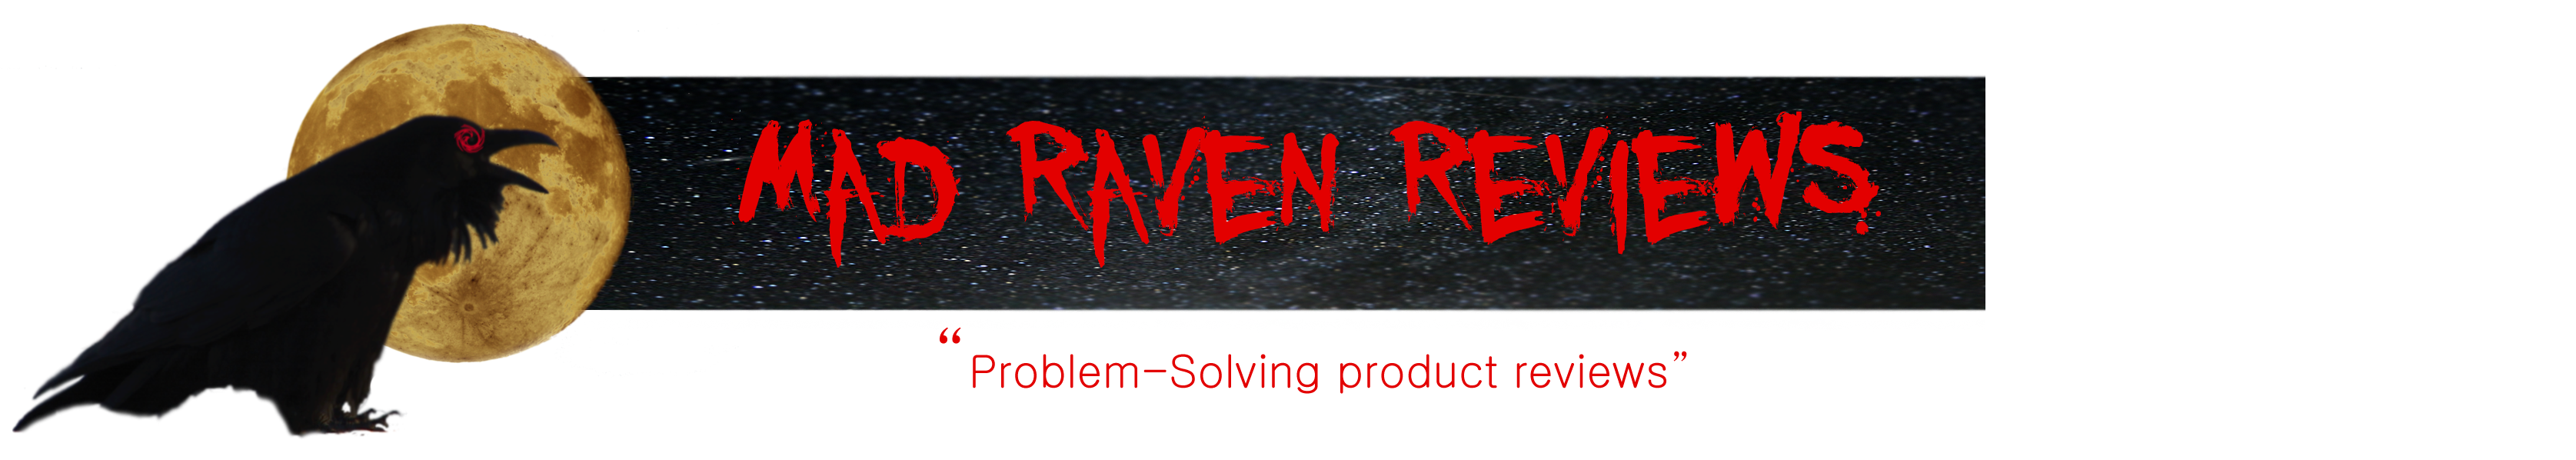 Mad Raven Reviews